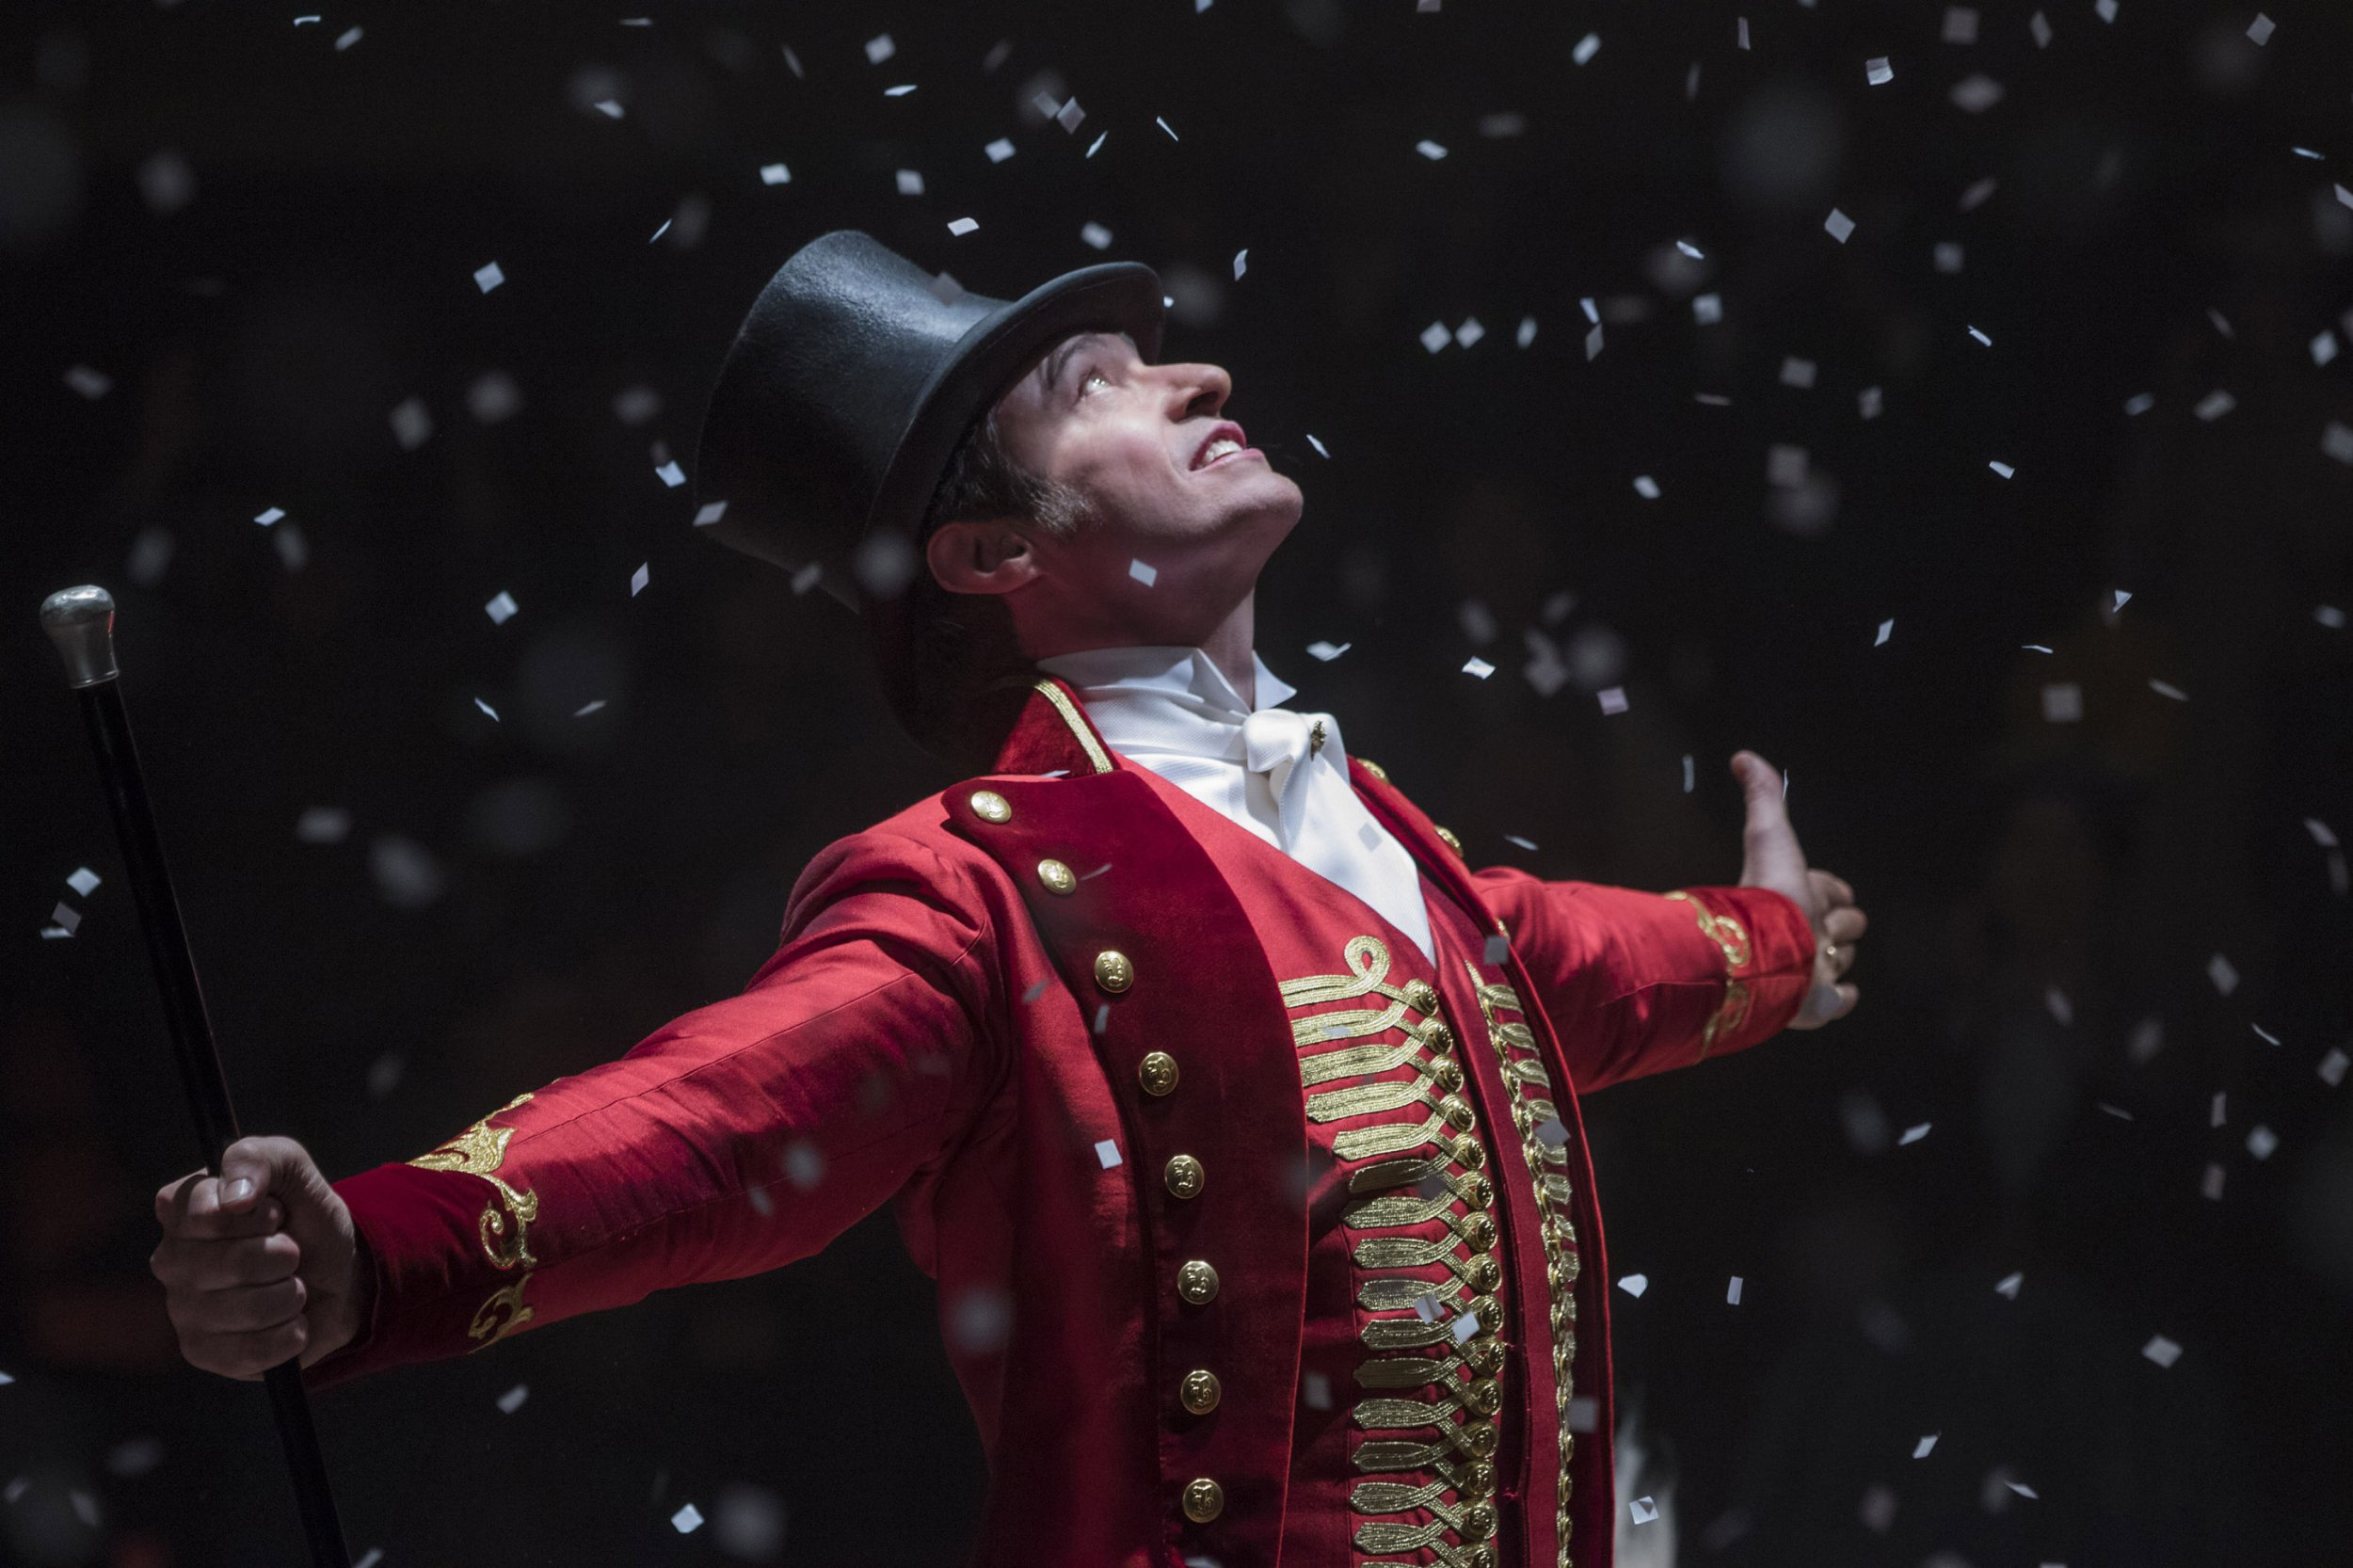 """Editorial use only. No book cover usage. Mandatory Credit: Photo by Ntavernise/20thcentury Fox/Kobal/REX/Shutterstock (9308130c) Hugh Jackman """"The Greatest Showman"""" Film - 2017"""